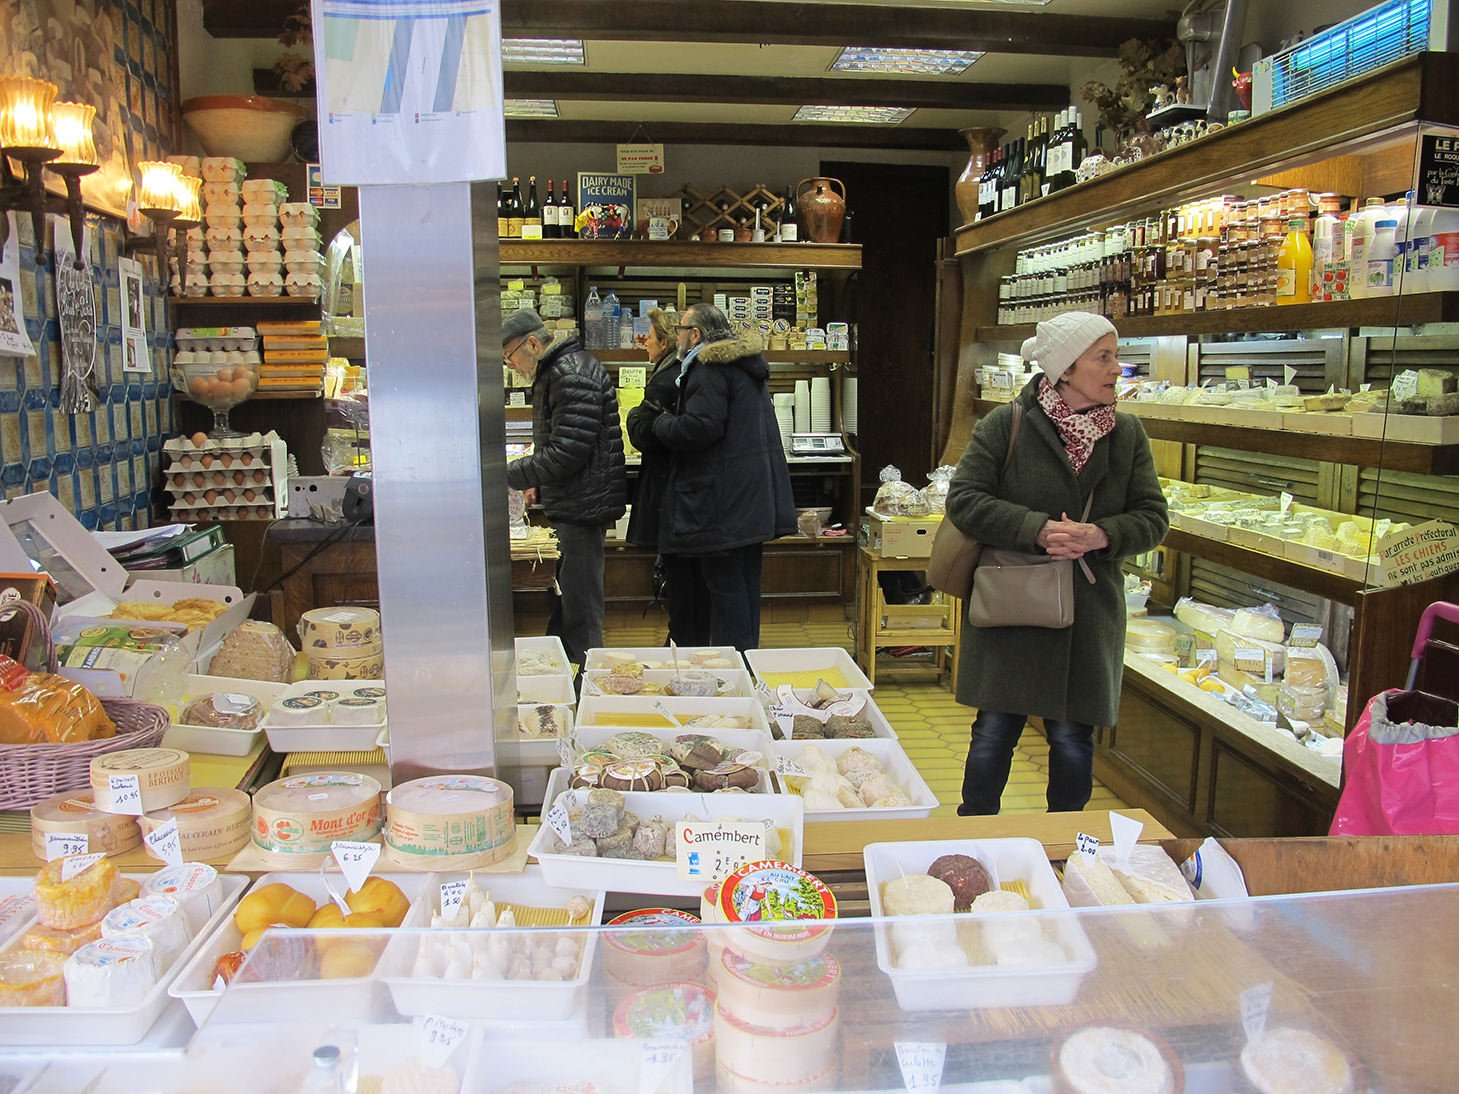 Cheese, rue des Martyrs, Paris, France, travel